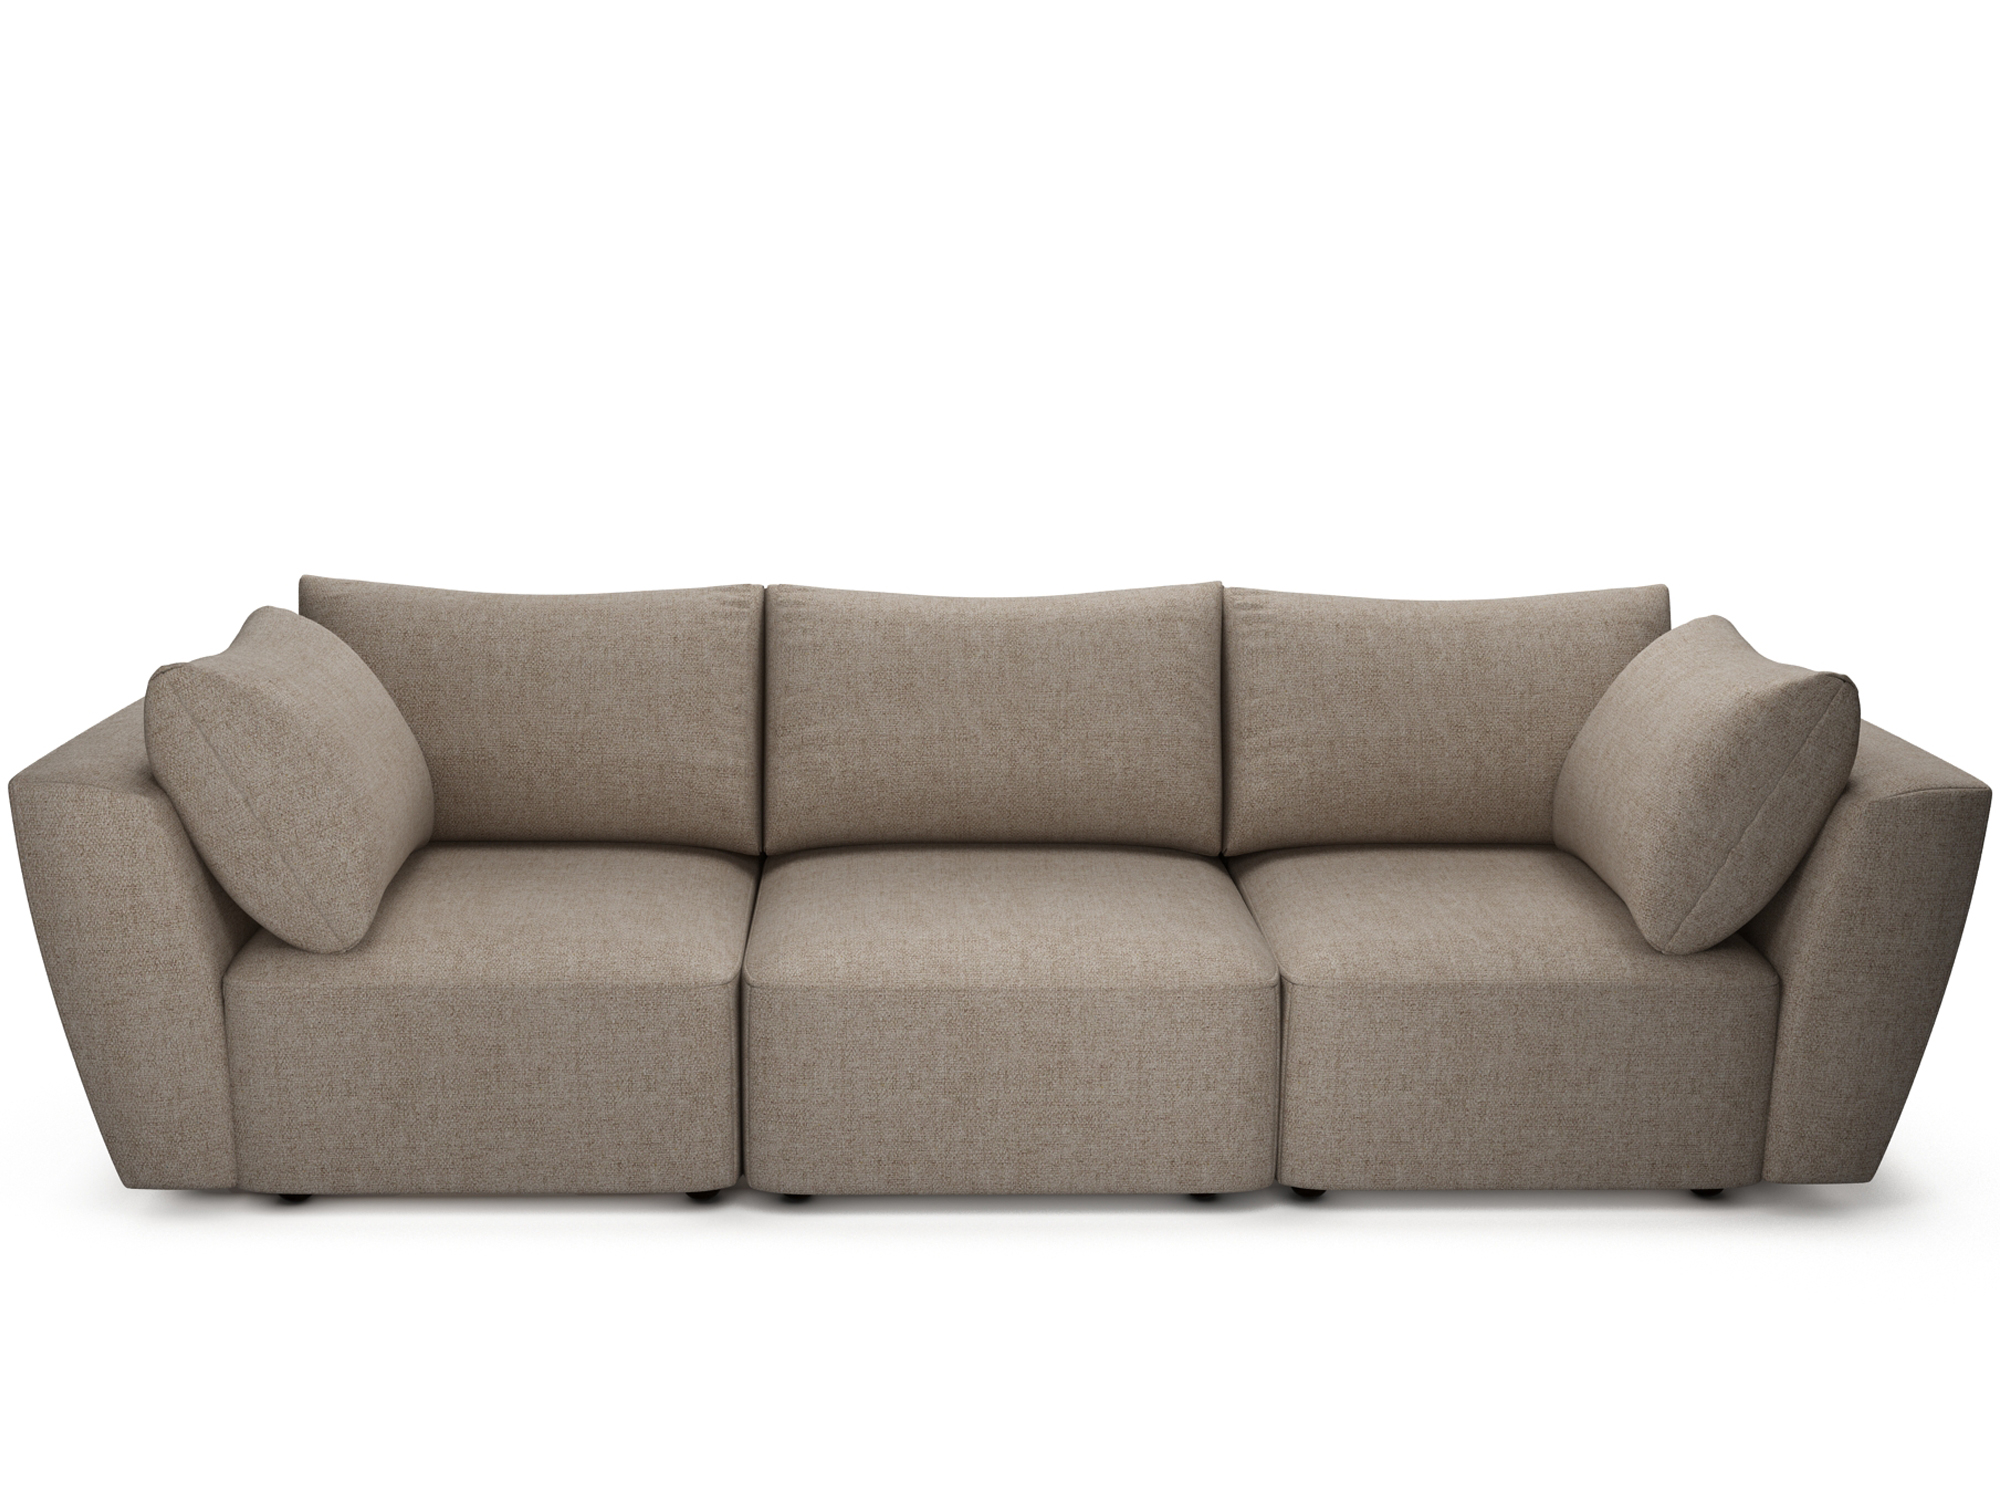 Lottie Neutral Sofa